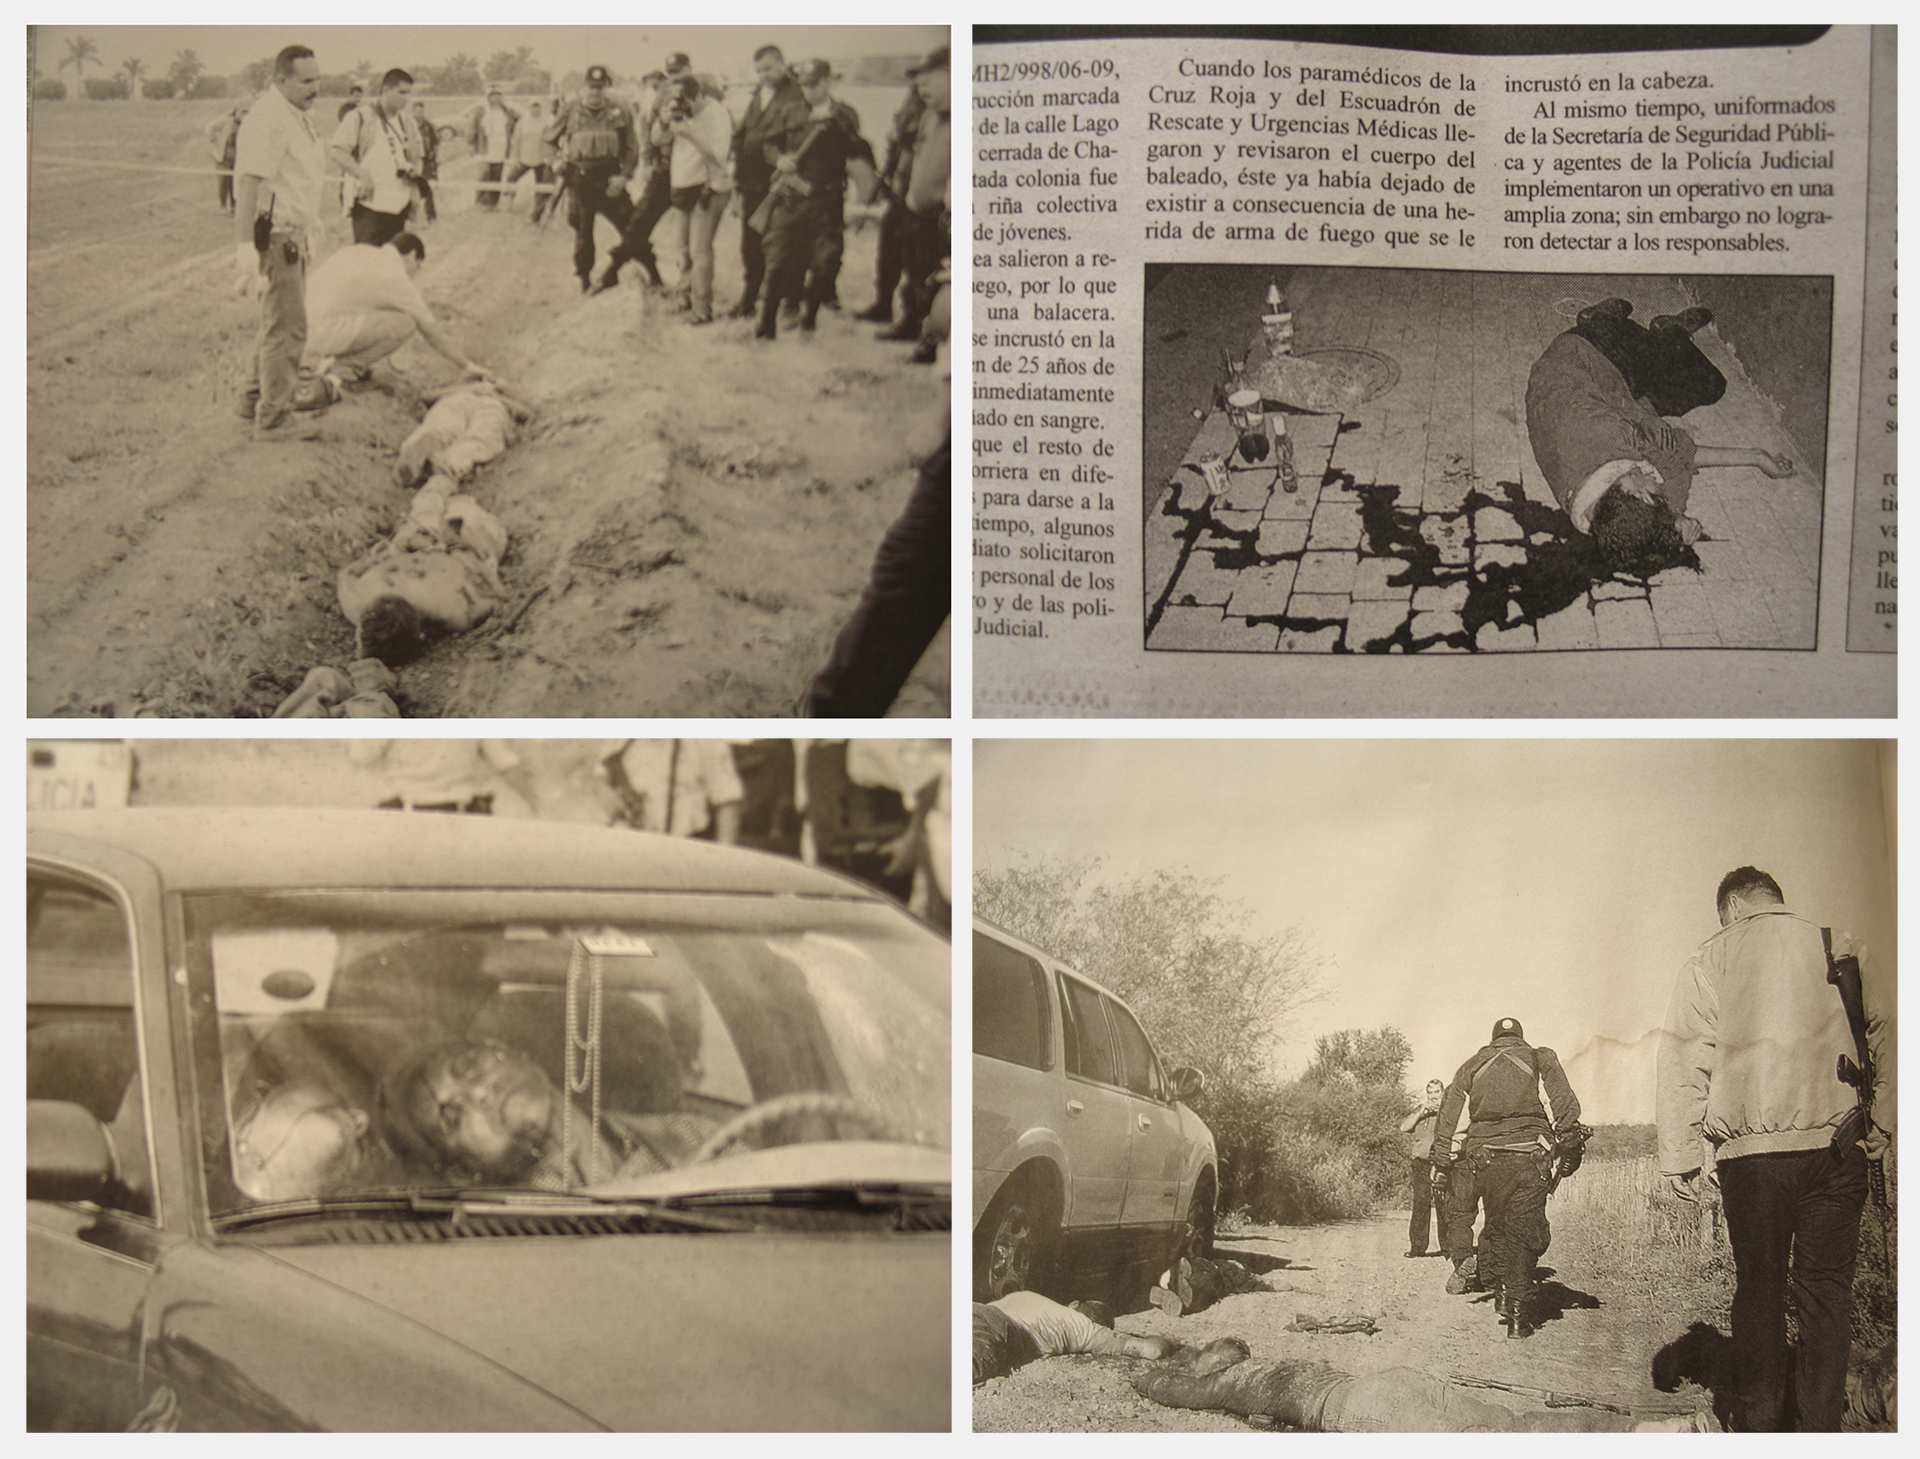 Newspaper clippings of the daily violence in Mexico.